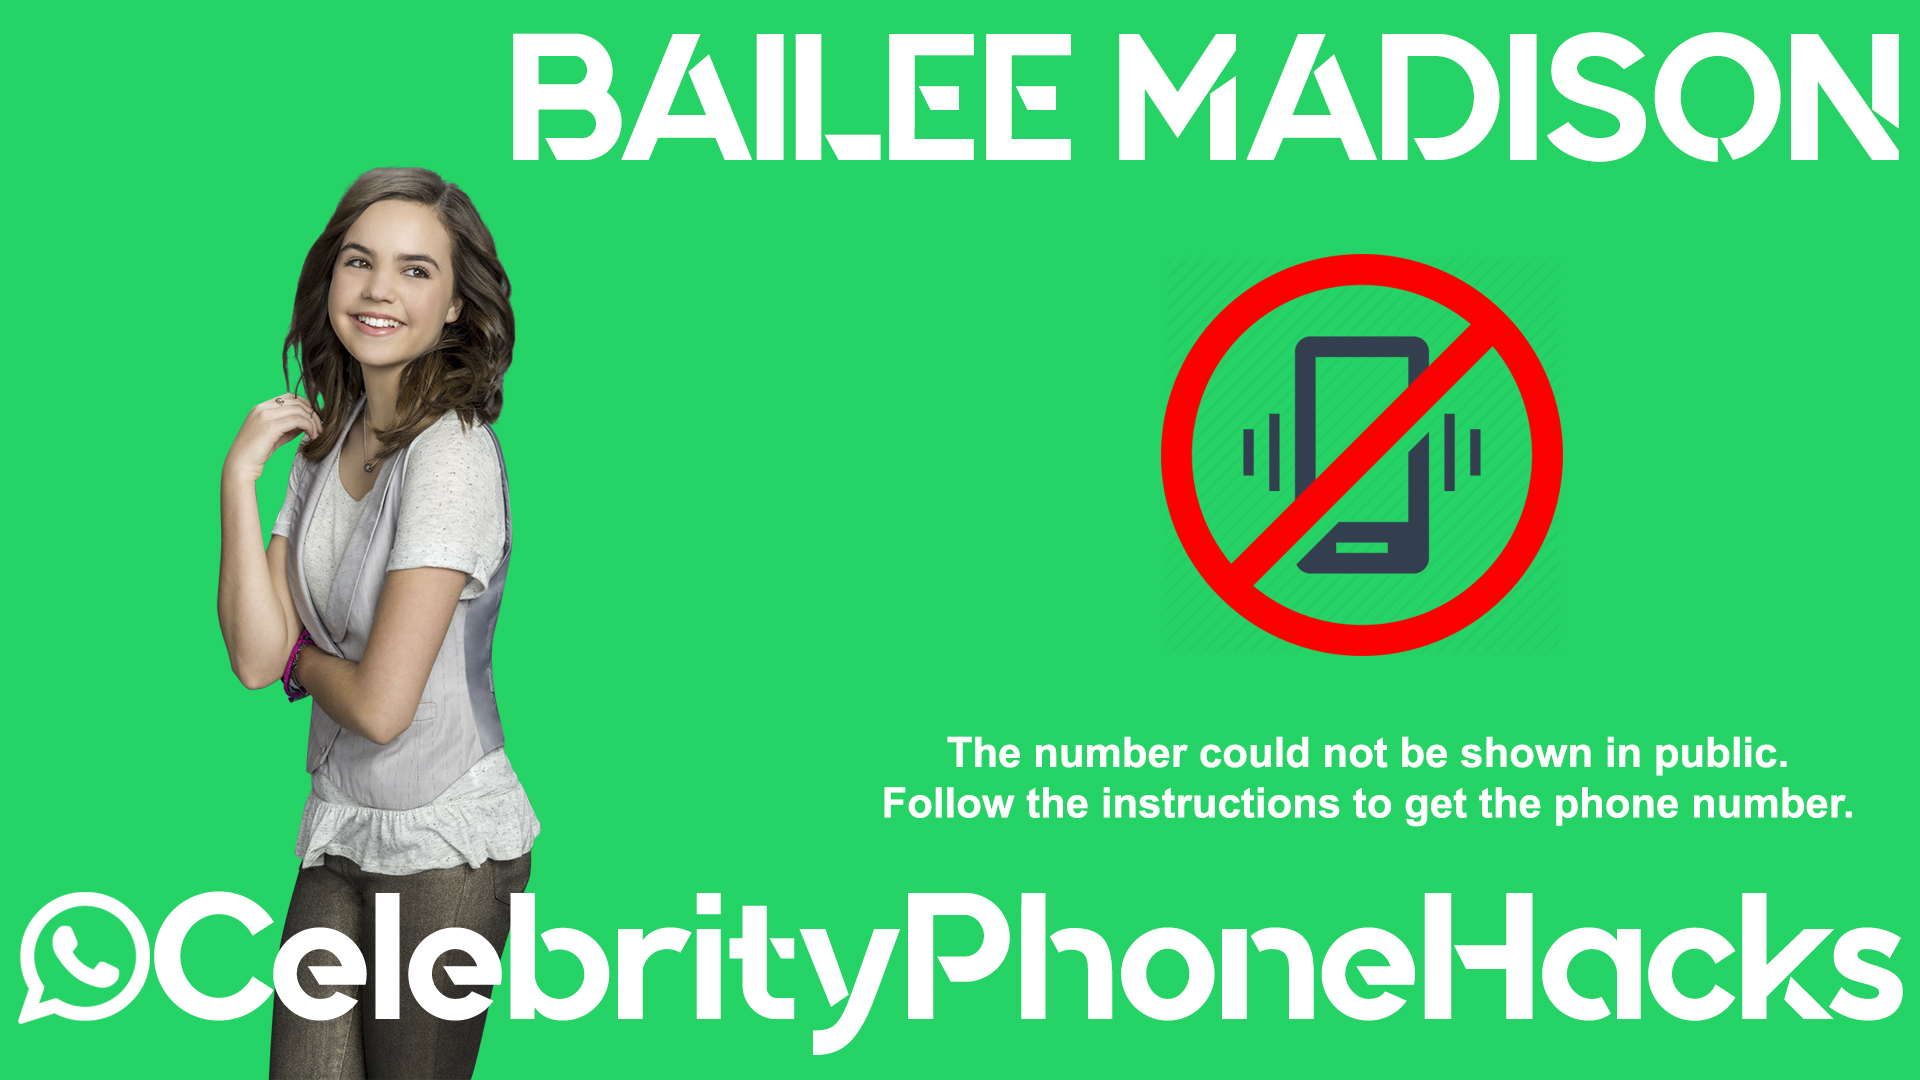 Bailee Madison real phone number 2019 whatsapp hacked leaked